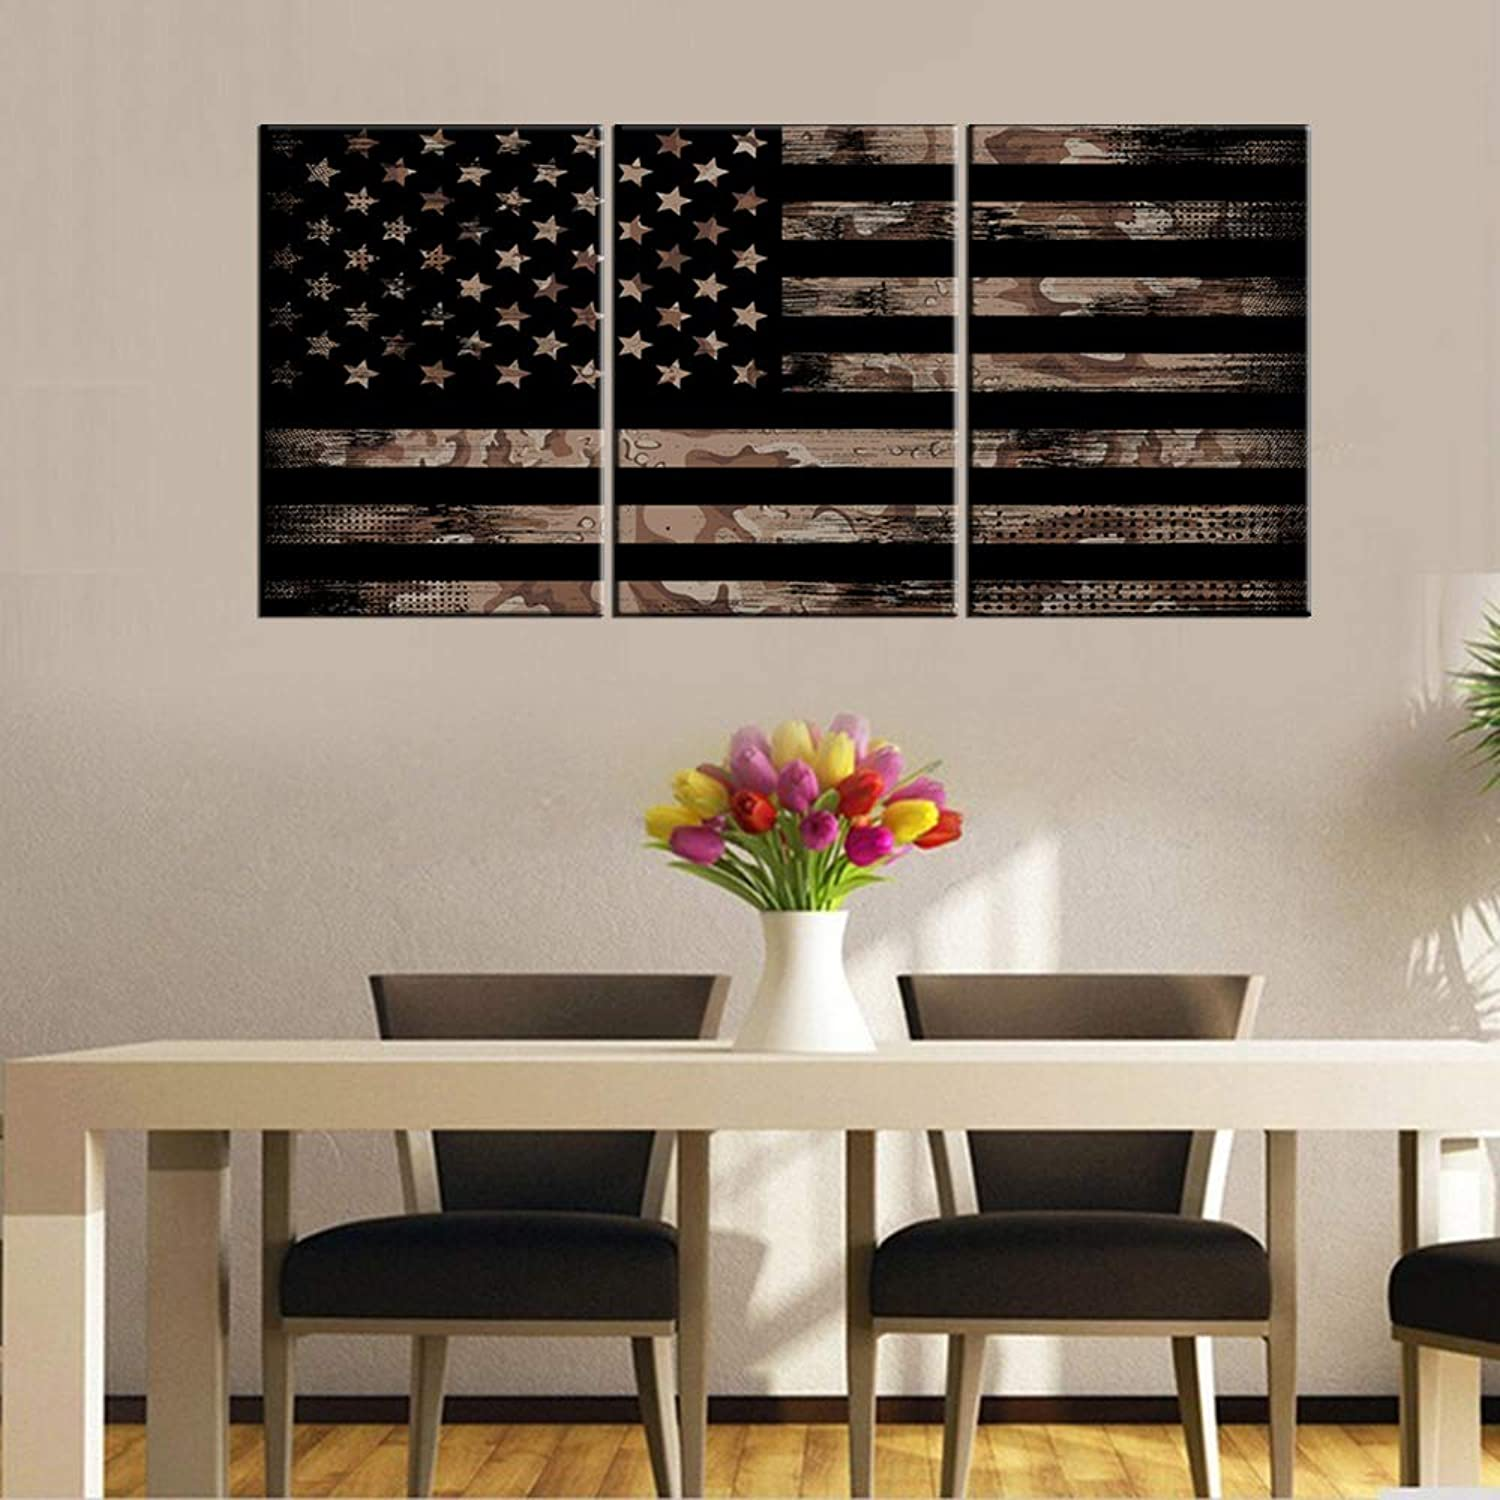 Pictures for Living Room American Flag with Desert Camouflage Paintings Patriotism Artwork 3 Piece Prints Wall Art on Canvas Bedroom Giclee House Decor Framed Stretched Ready to Hang(48''Wx24''H)